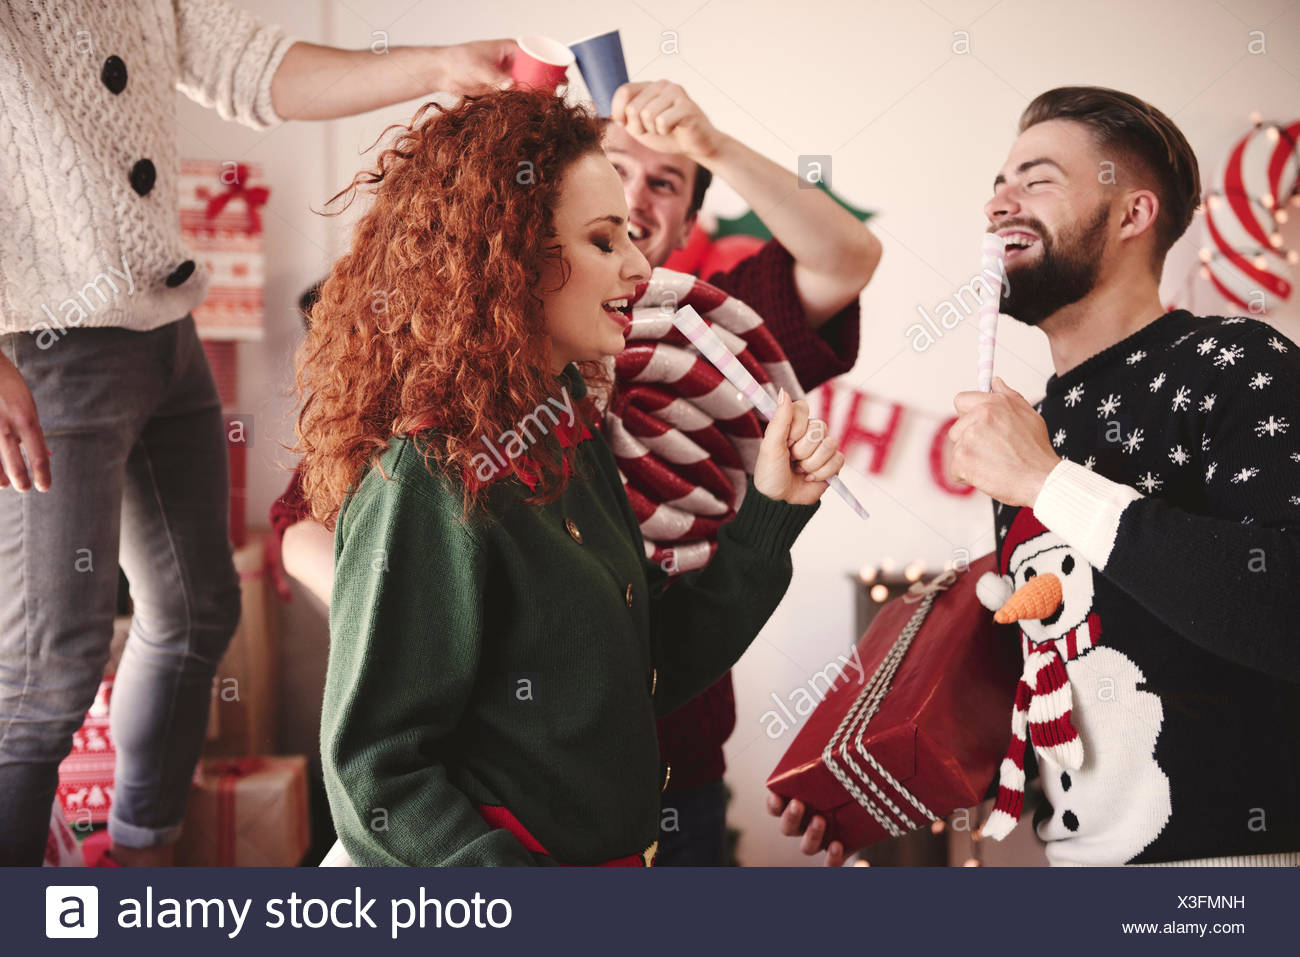 Young man and woman singing with pretend microphones at christmas party - Stock Image